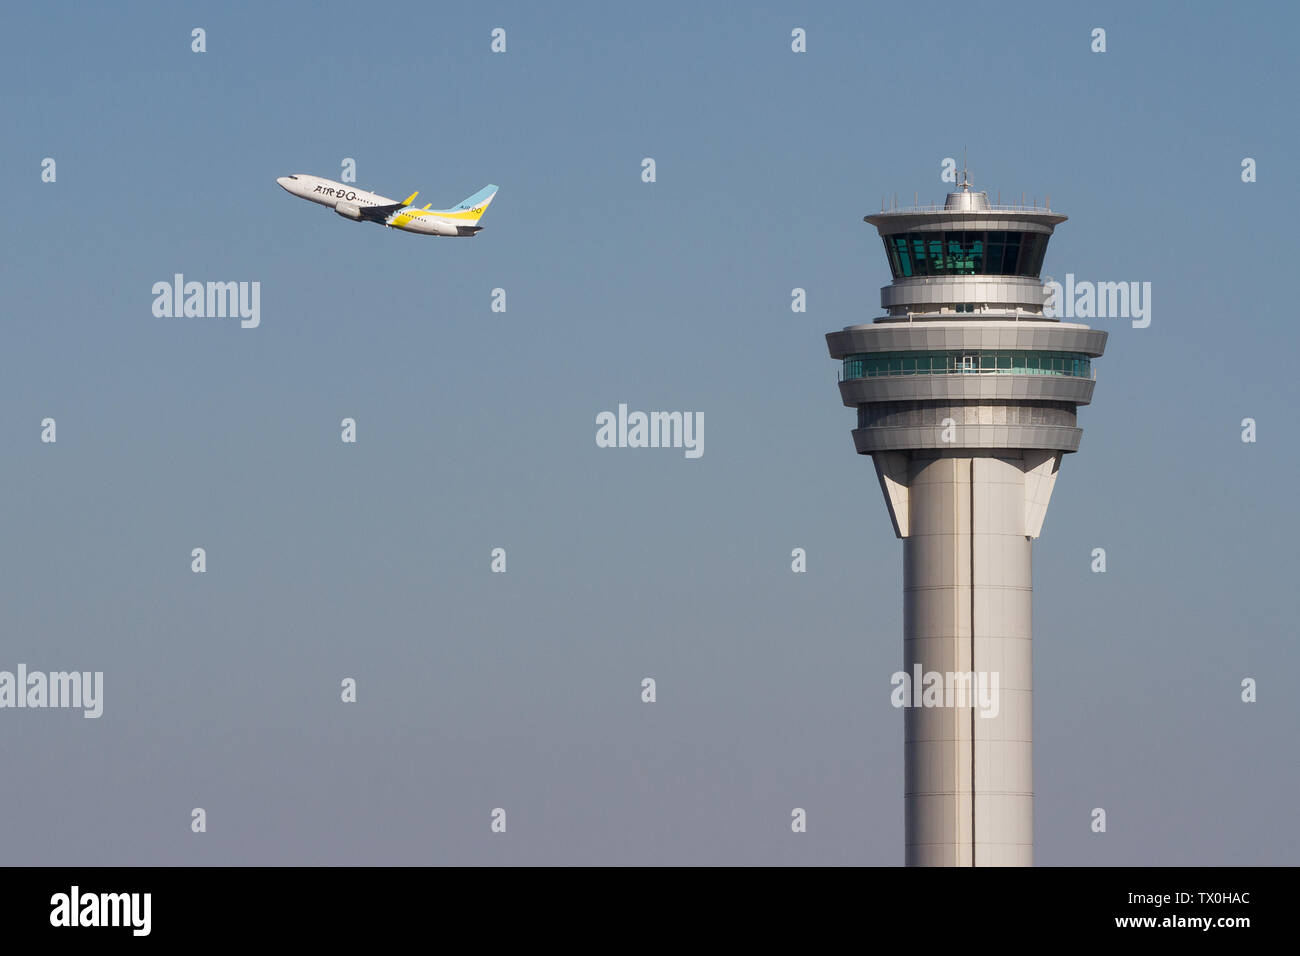 A boeing 737-700 with regional airline, Air Do trakes off behind the control tower at Haneda International Airport, Tokyo, Japan. Friday February 1st Stock Photo